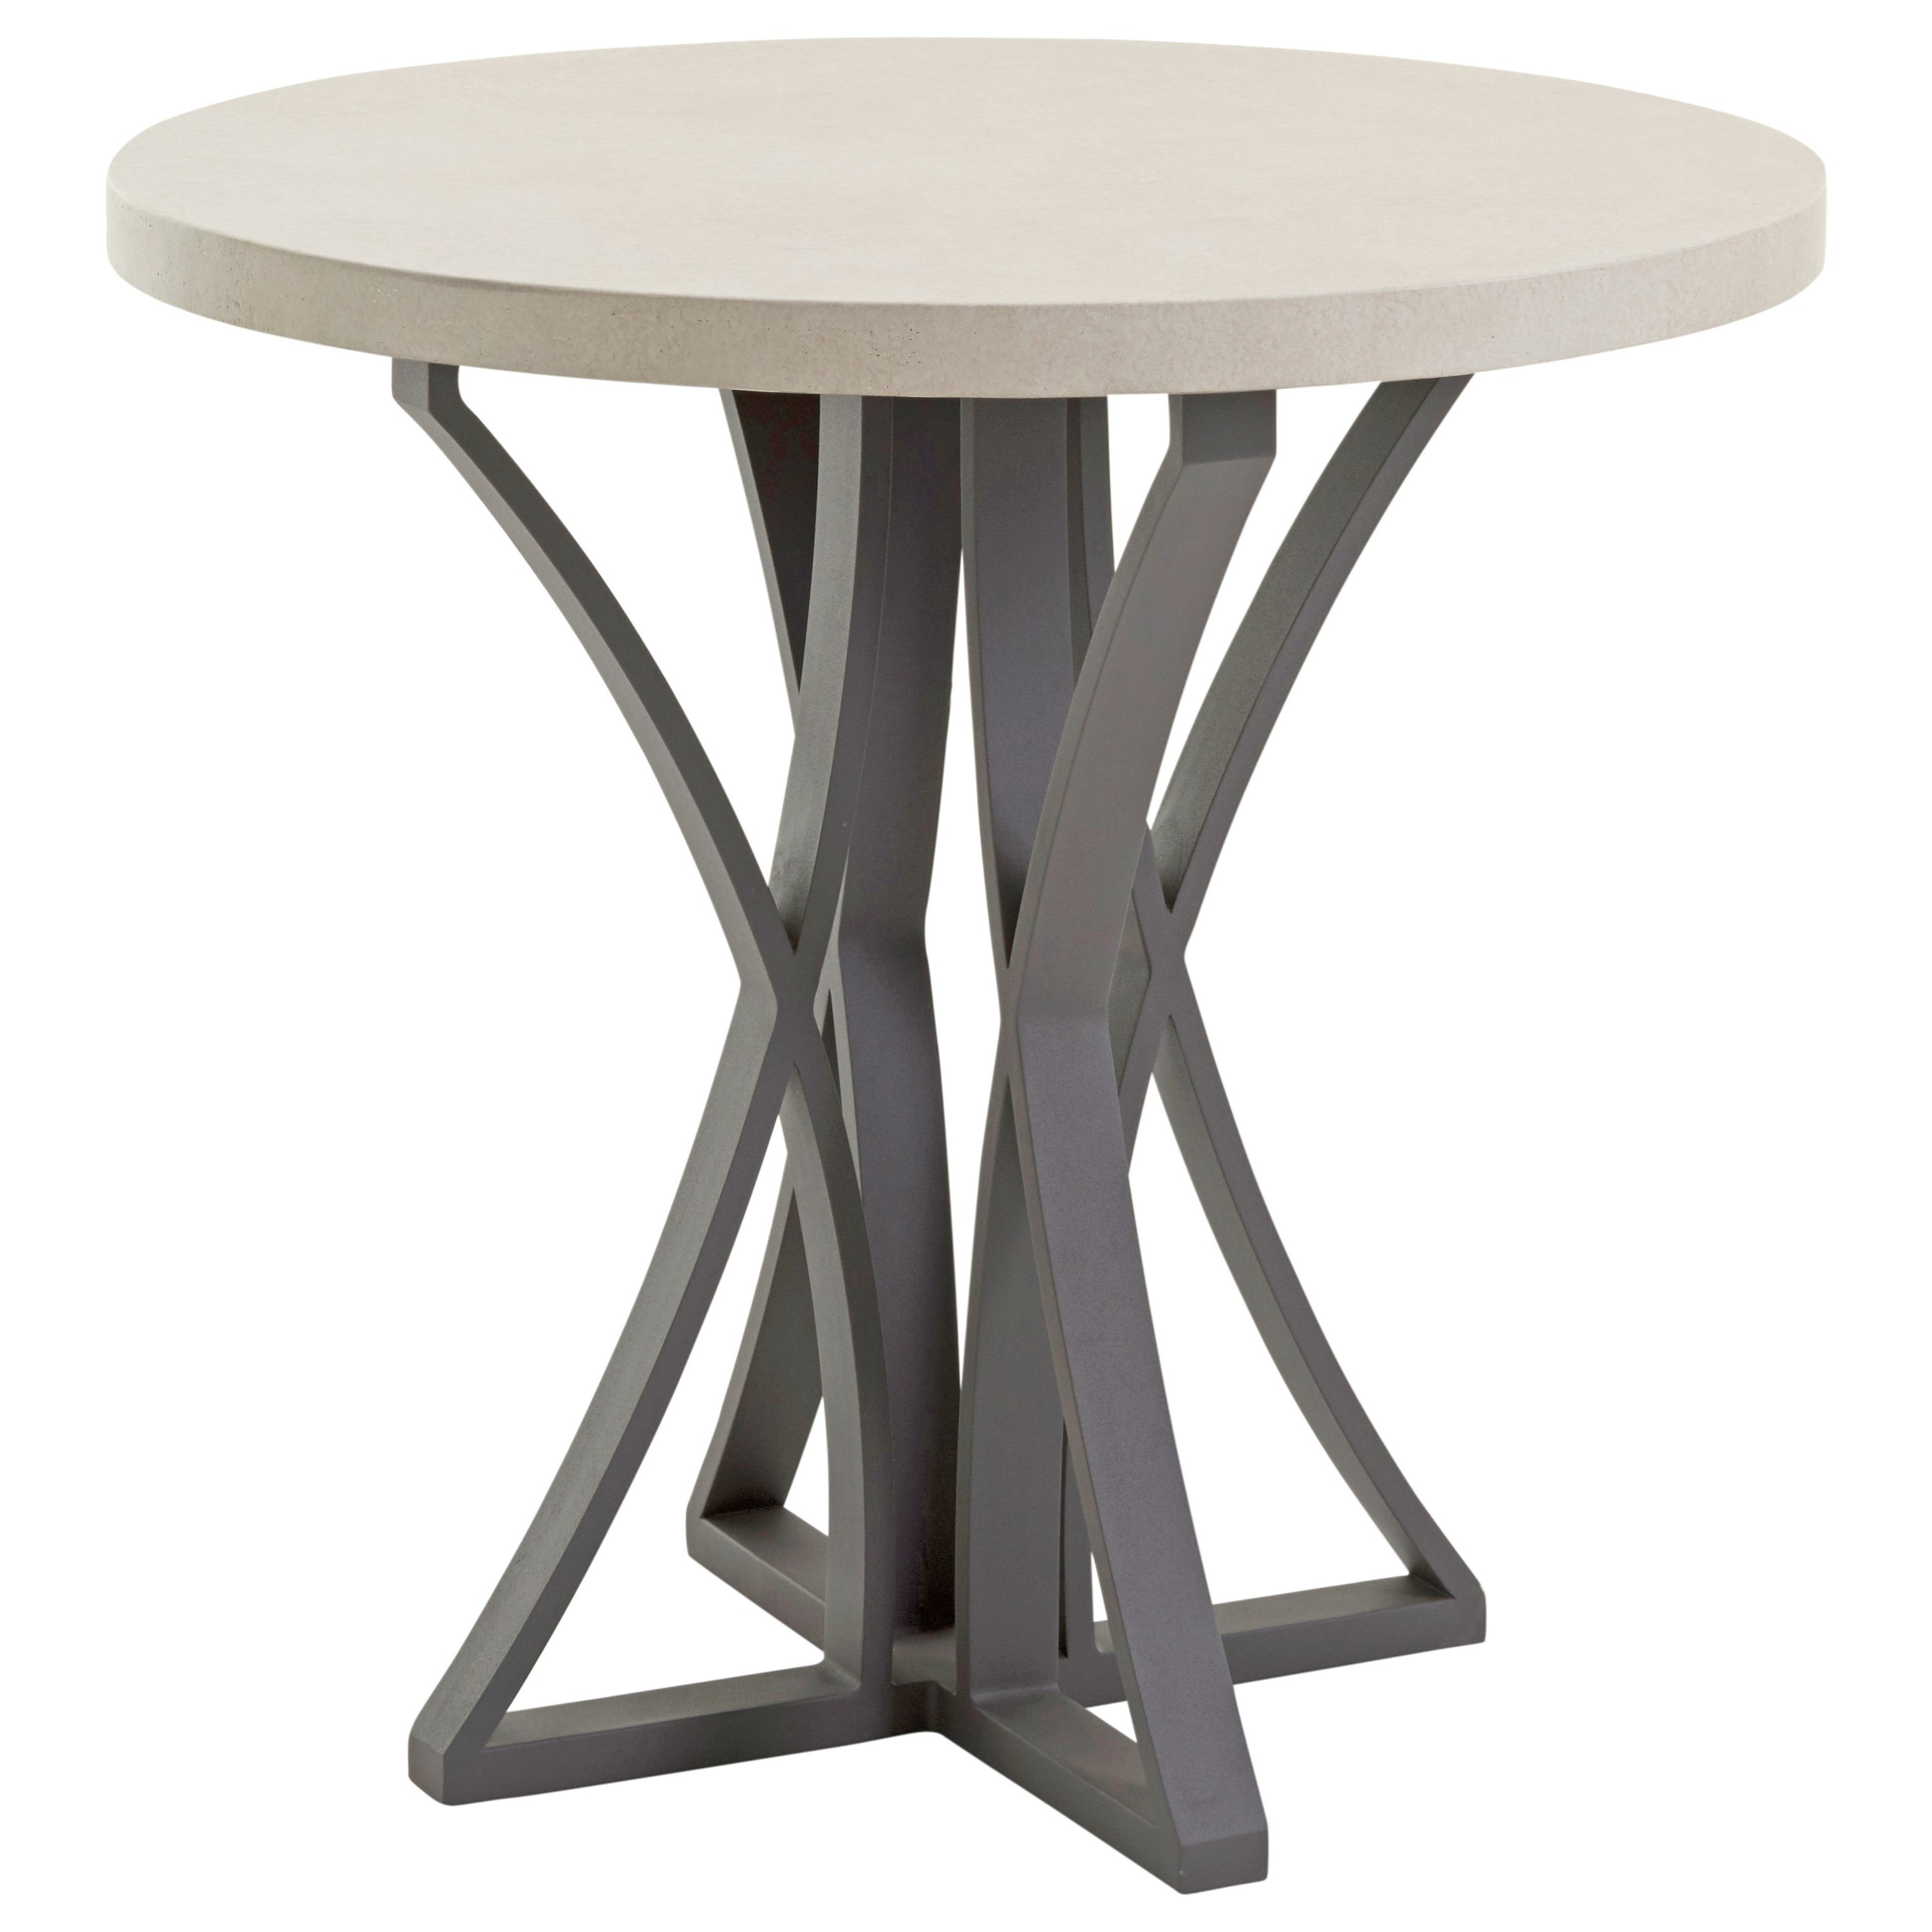 Cypress Point Ocean Terrace Outdoor Adj Bistro Table w/ Weatherstone Top by Tommy Bahama Outdoor Living at Baer's Furniture